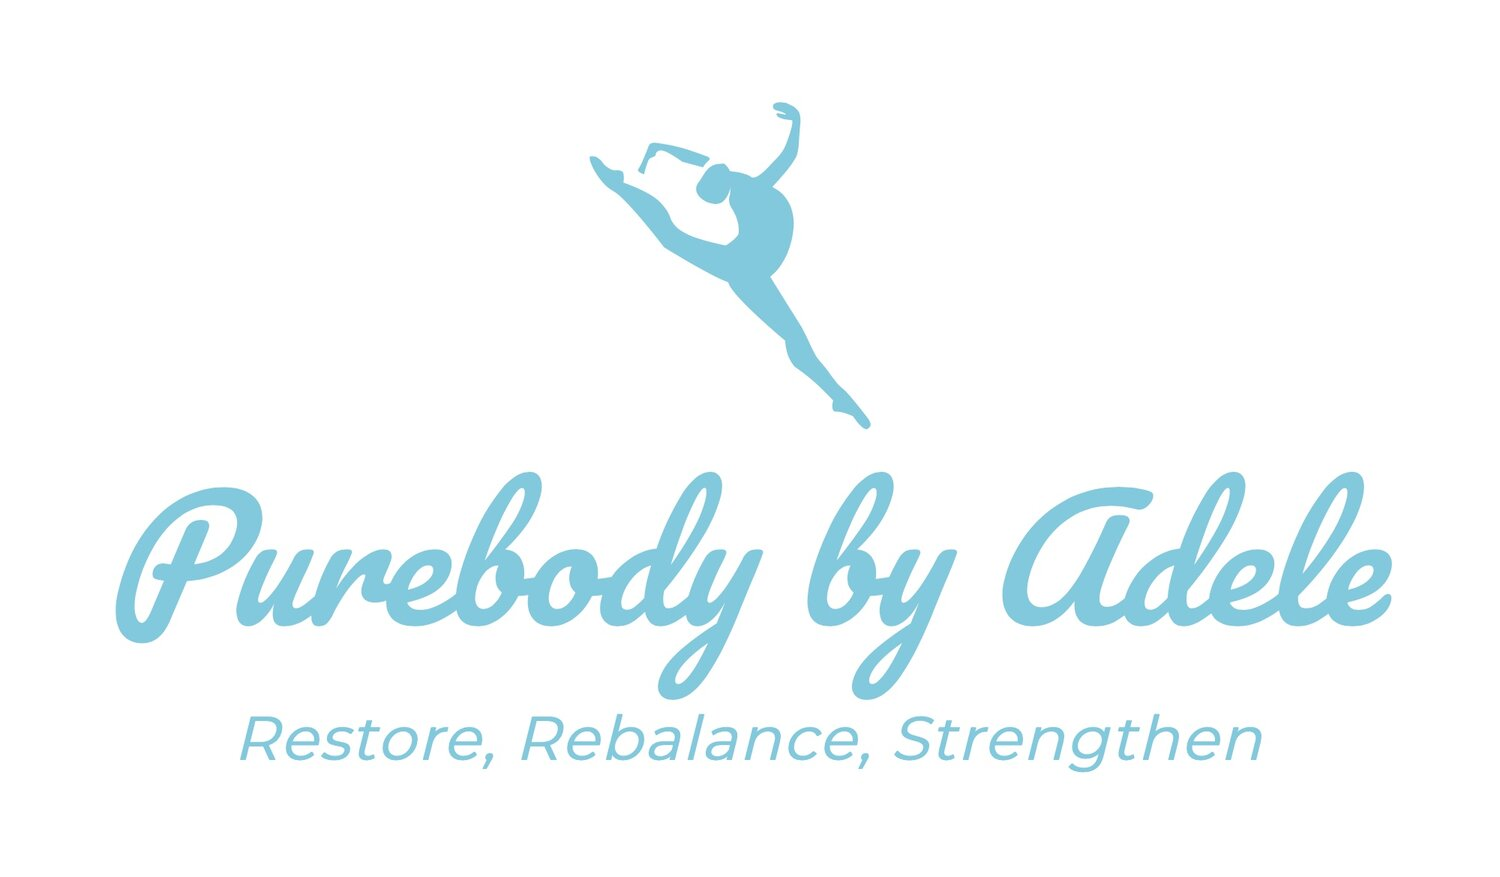 Adele Smyth - Purebody By Adele - Pilates, Barre classes in Surrey, Thames Ditton. Reformer sessions/women's health.